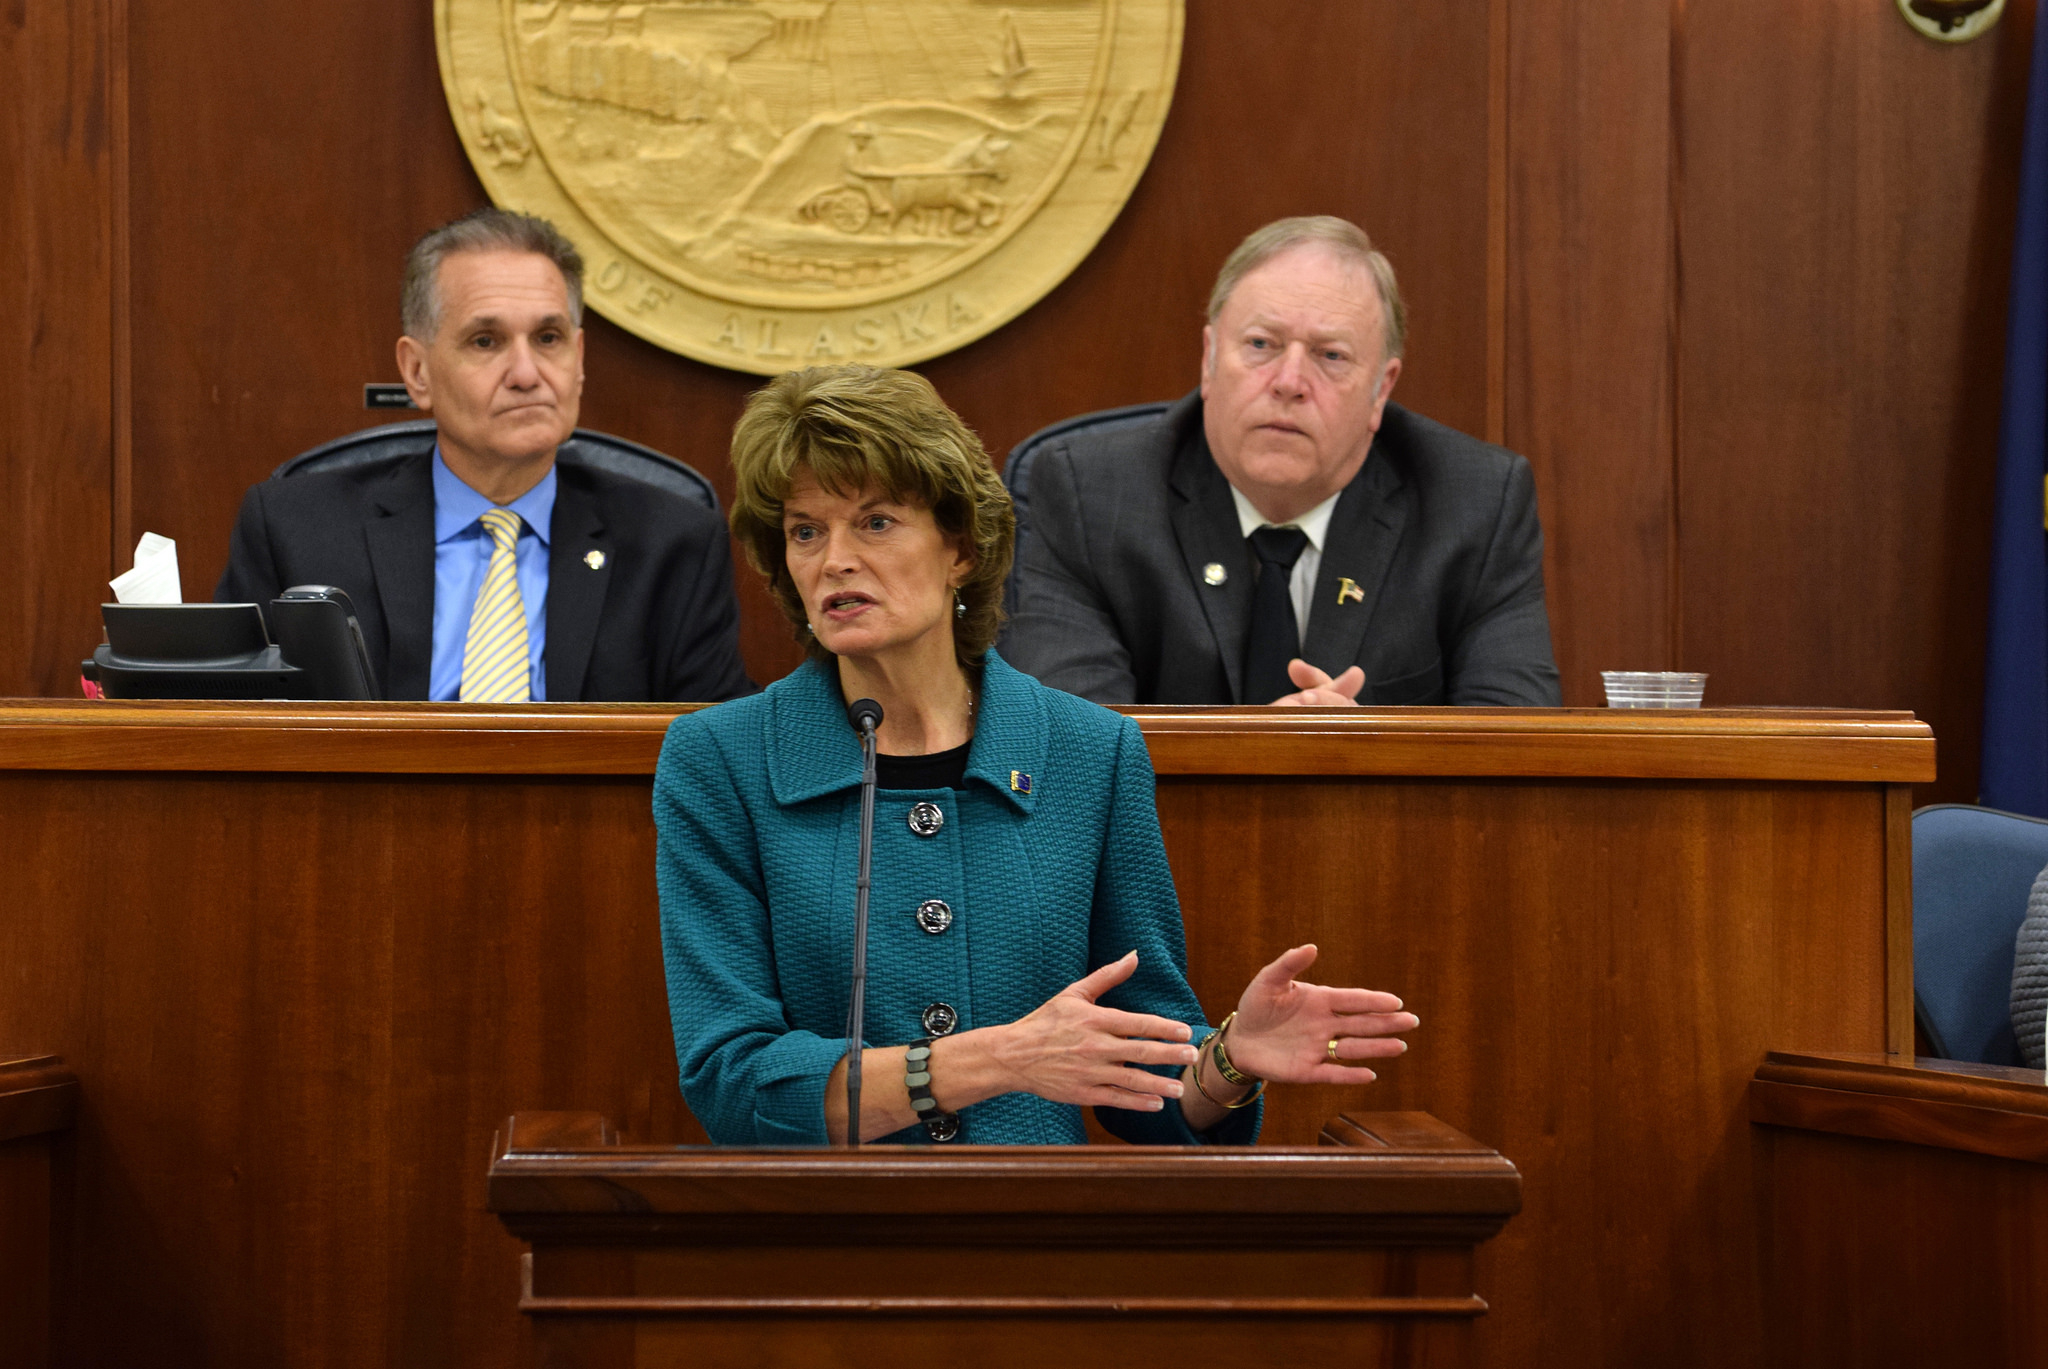 Sen. Lisa Murkowski speaks to the Alaska Legislature on Wednesday. (Photo by Skip Gray/360 North)